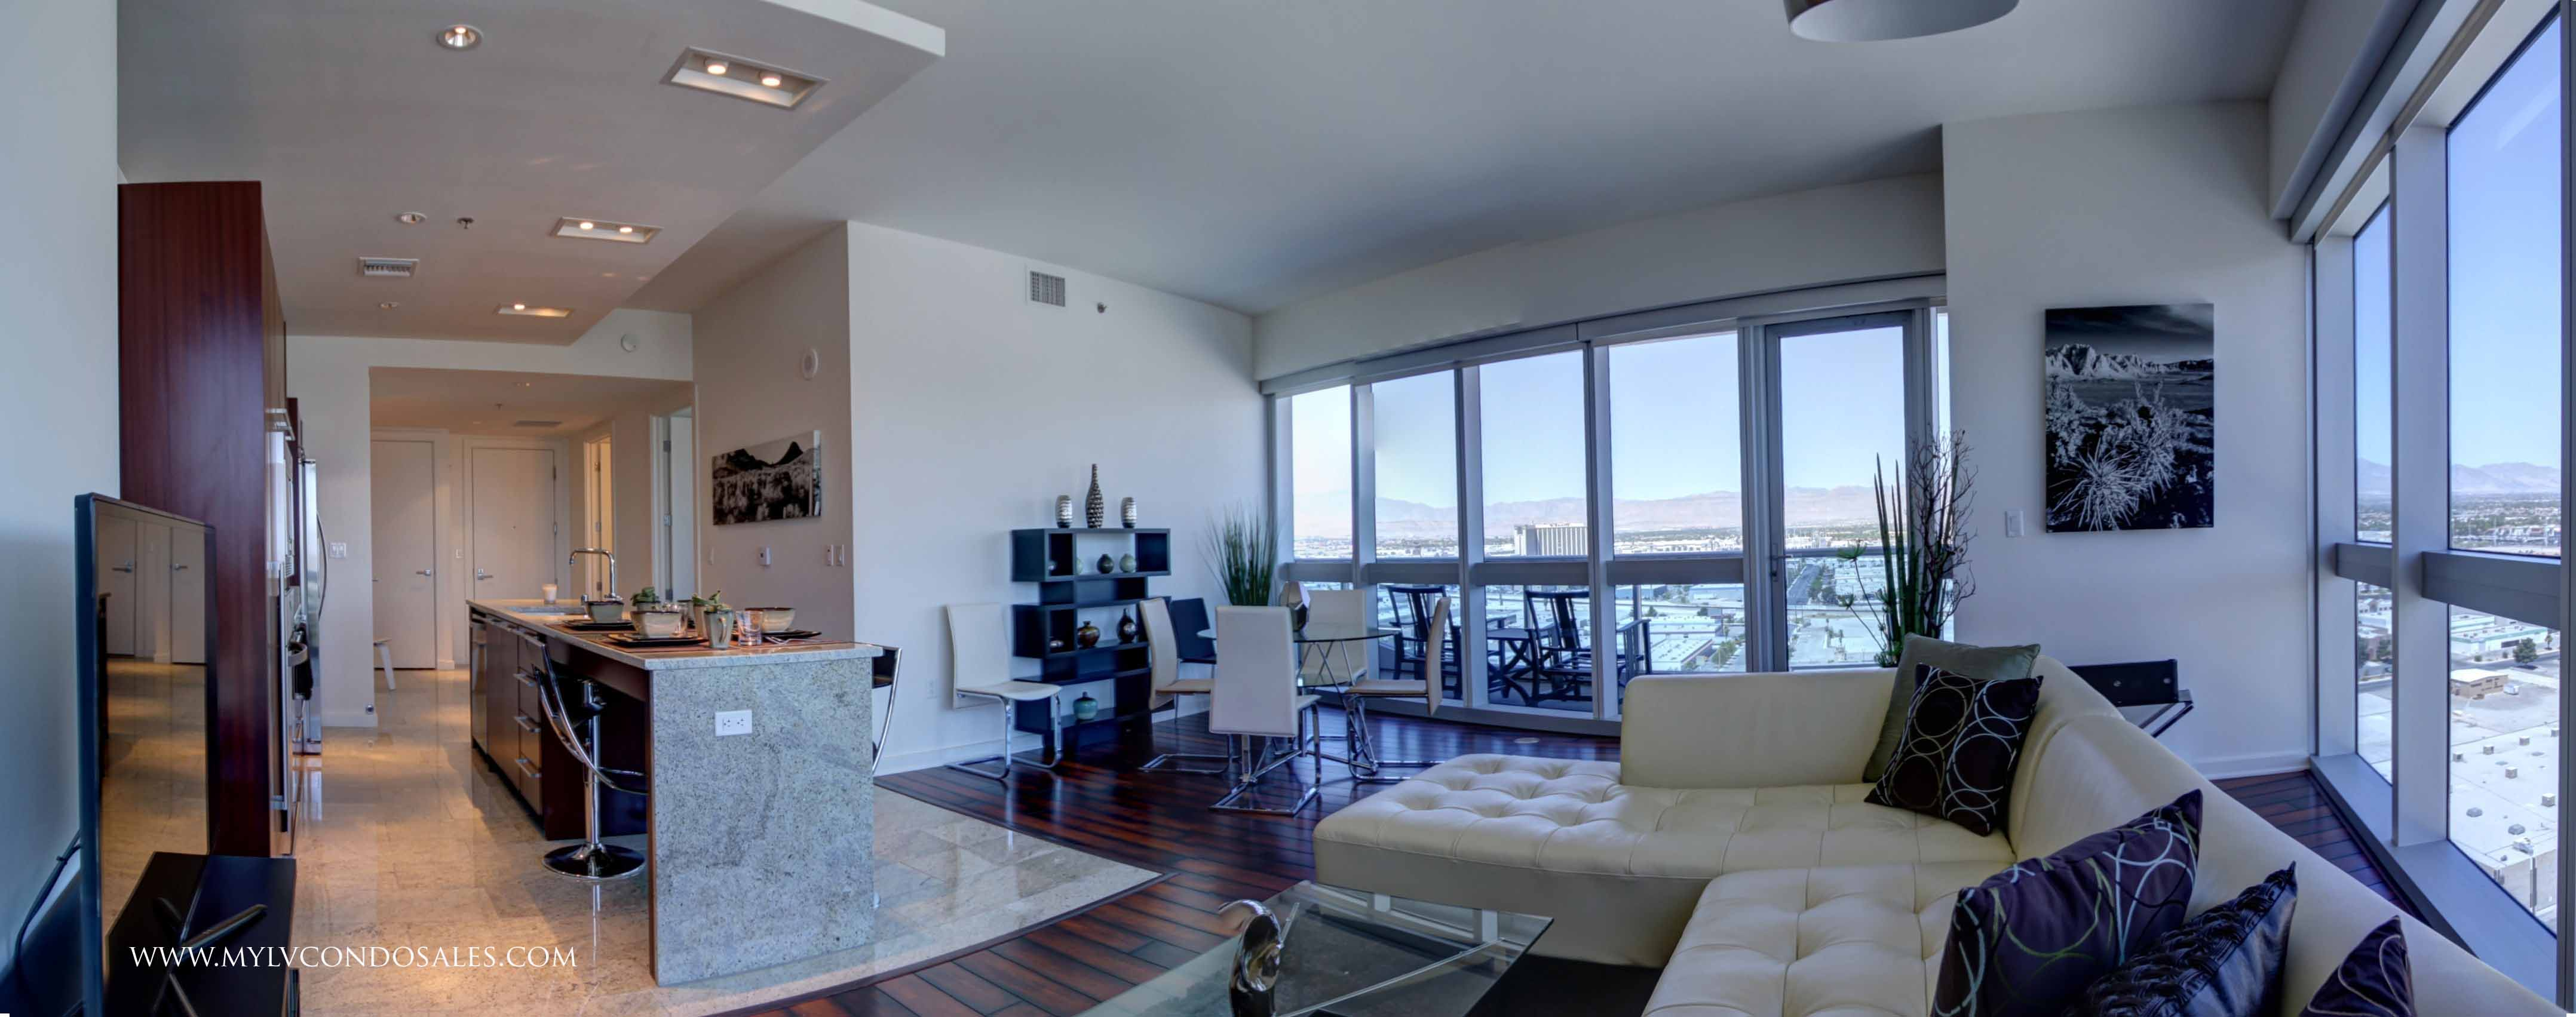 The Martin Las Vegas  Condos For Sale and Rent  Las Vegas Condos For Sale